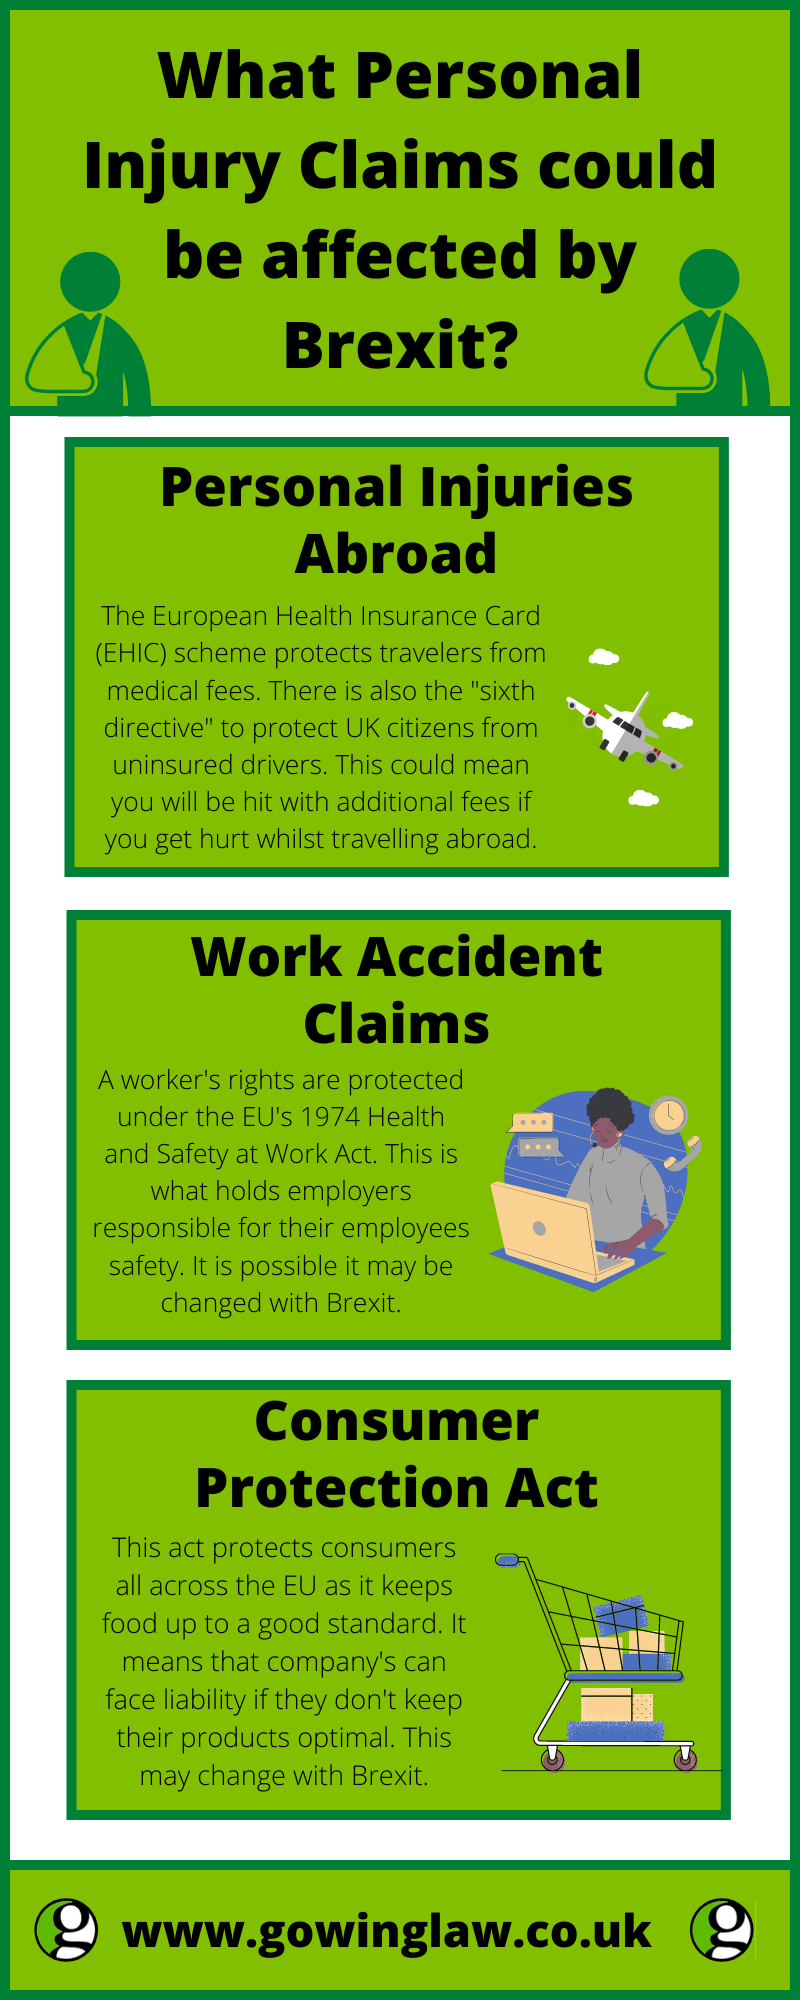 Personal Injury Claim and Brexit infographic